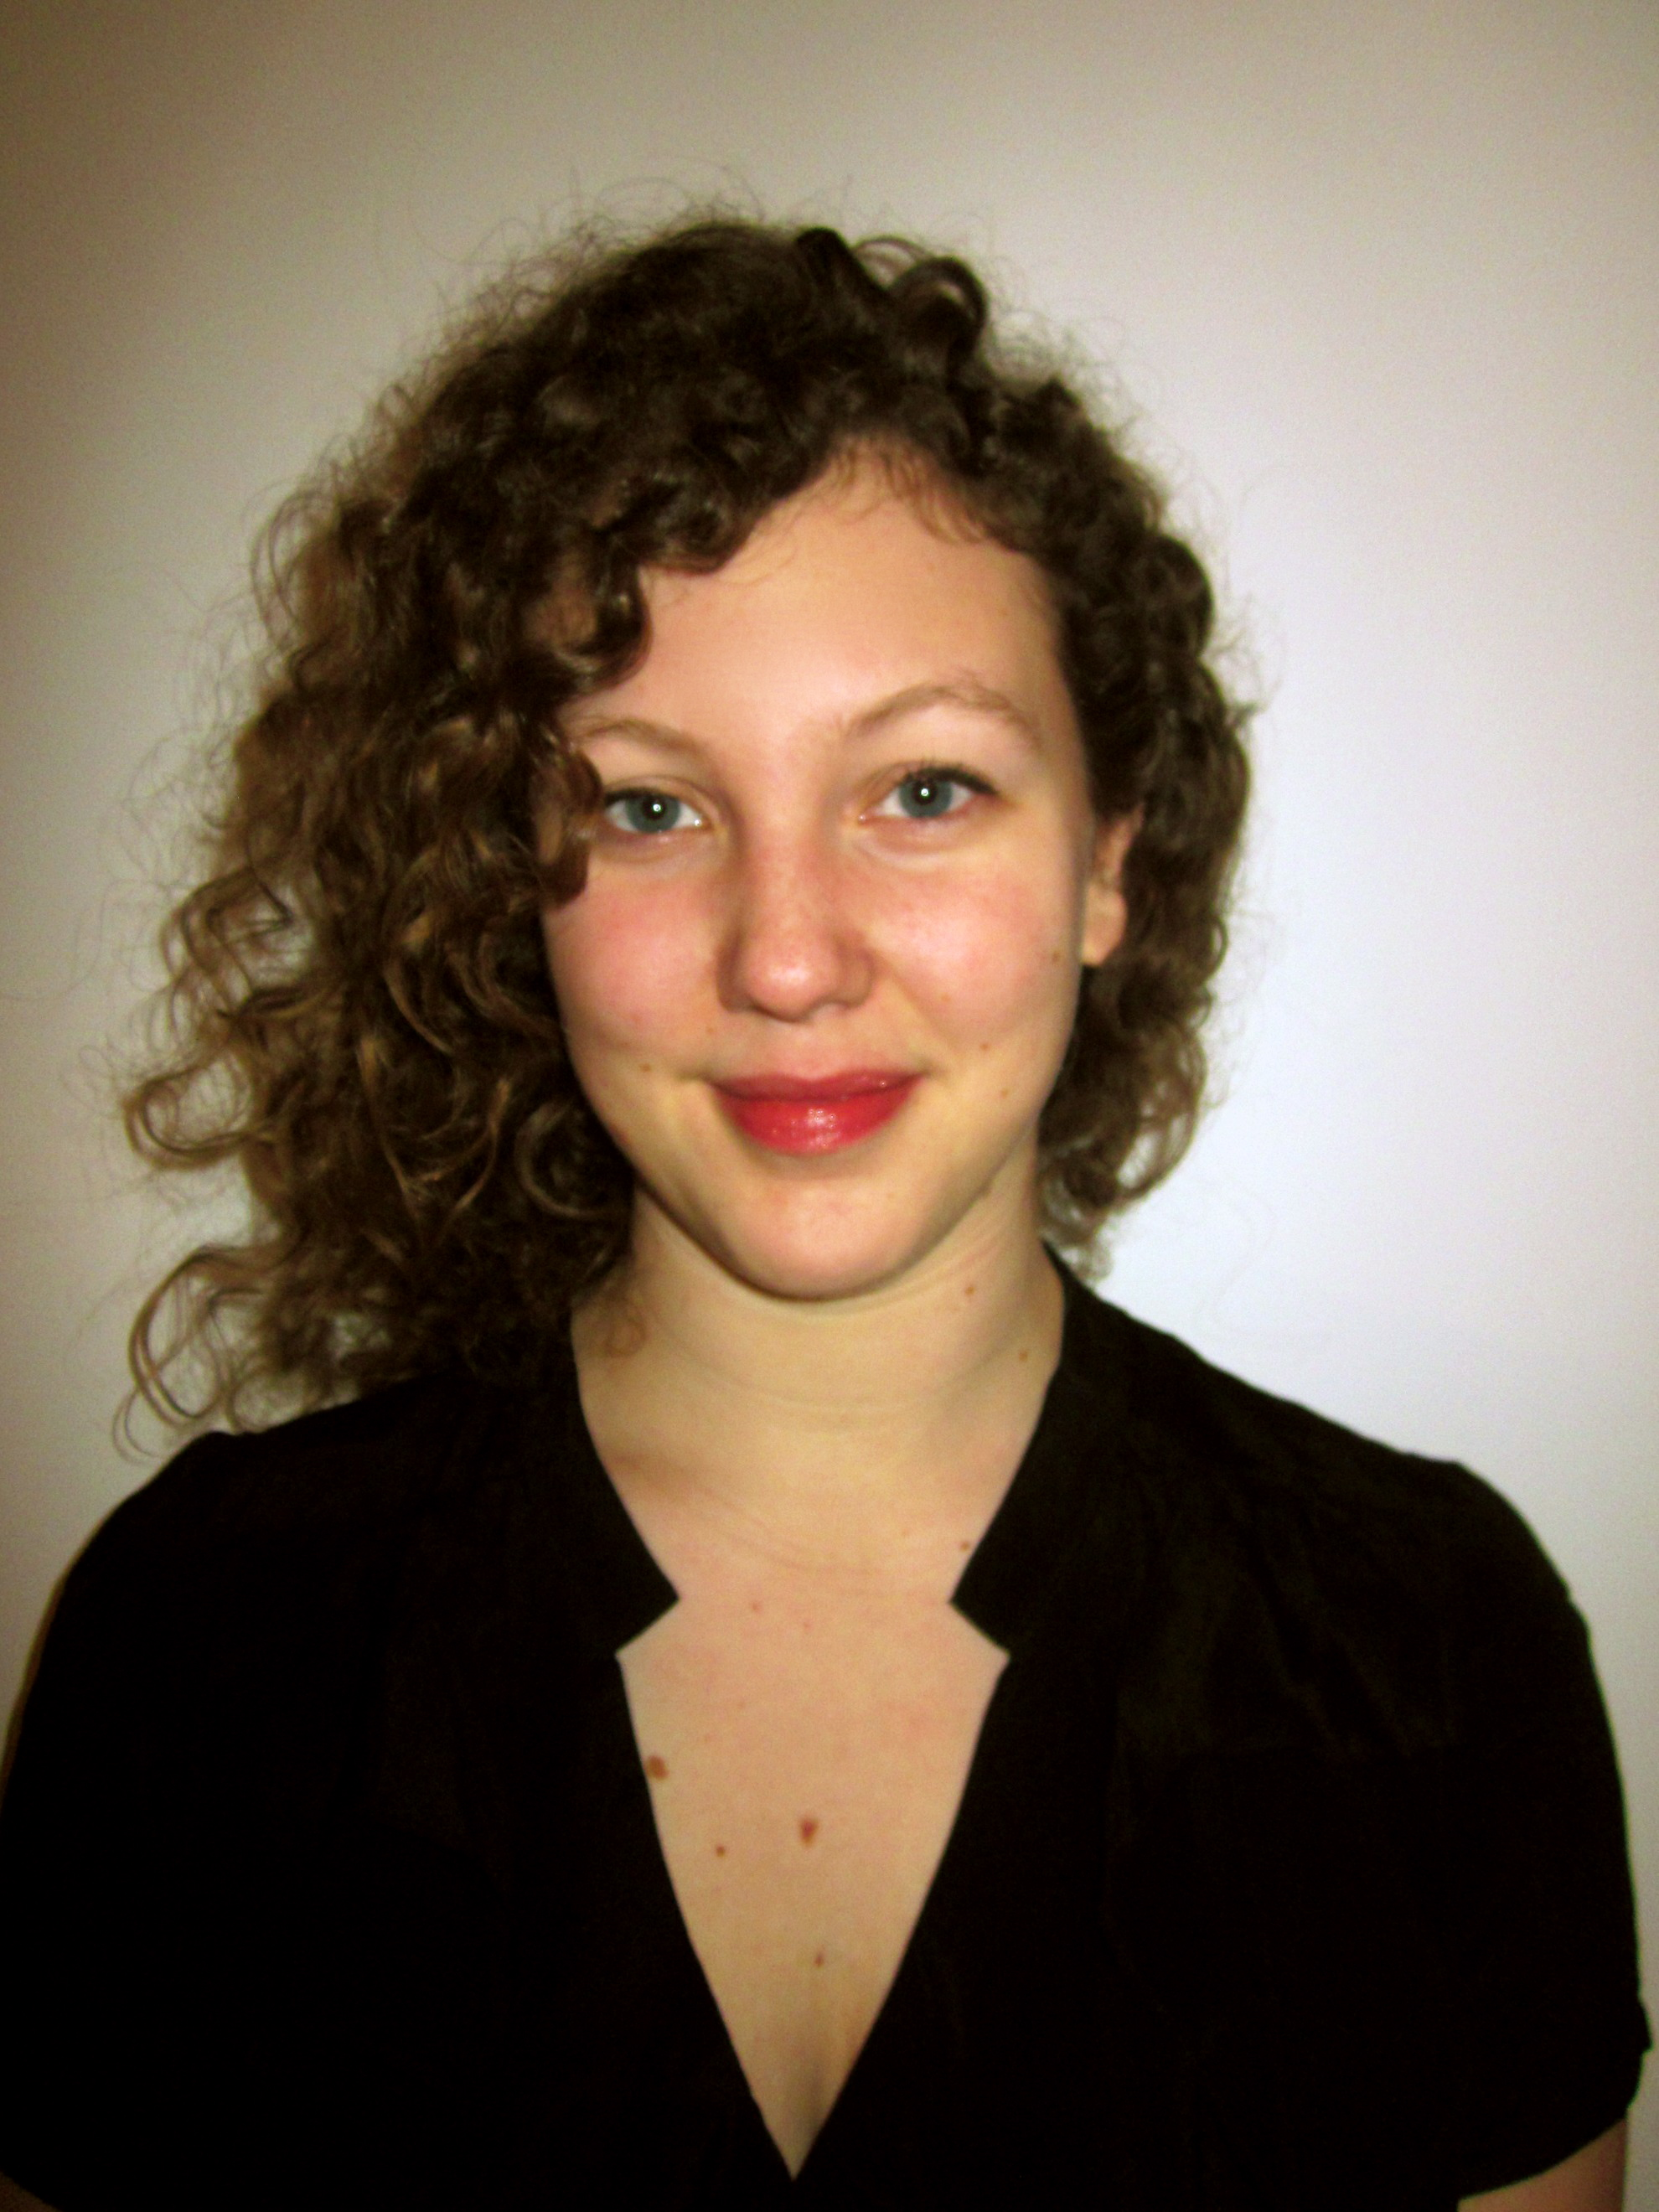 3 poems by Laura Lyall